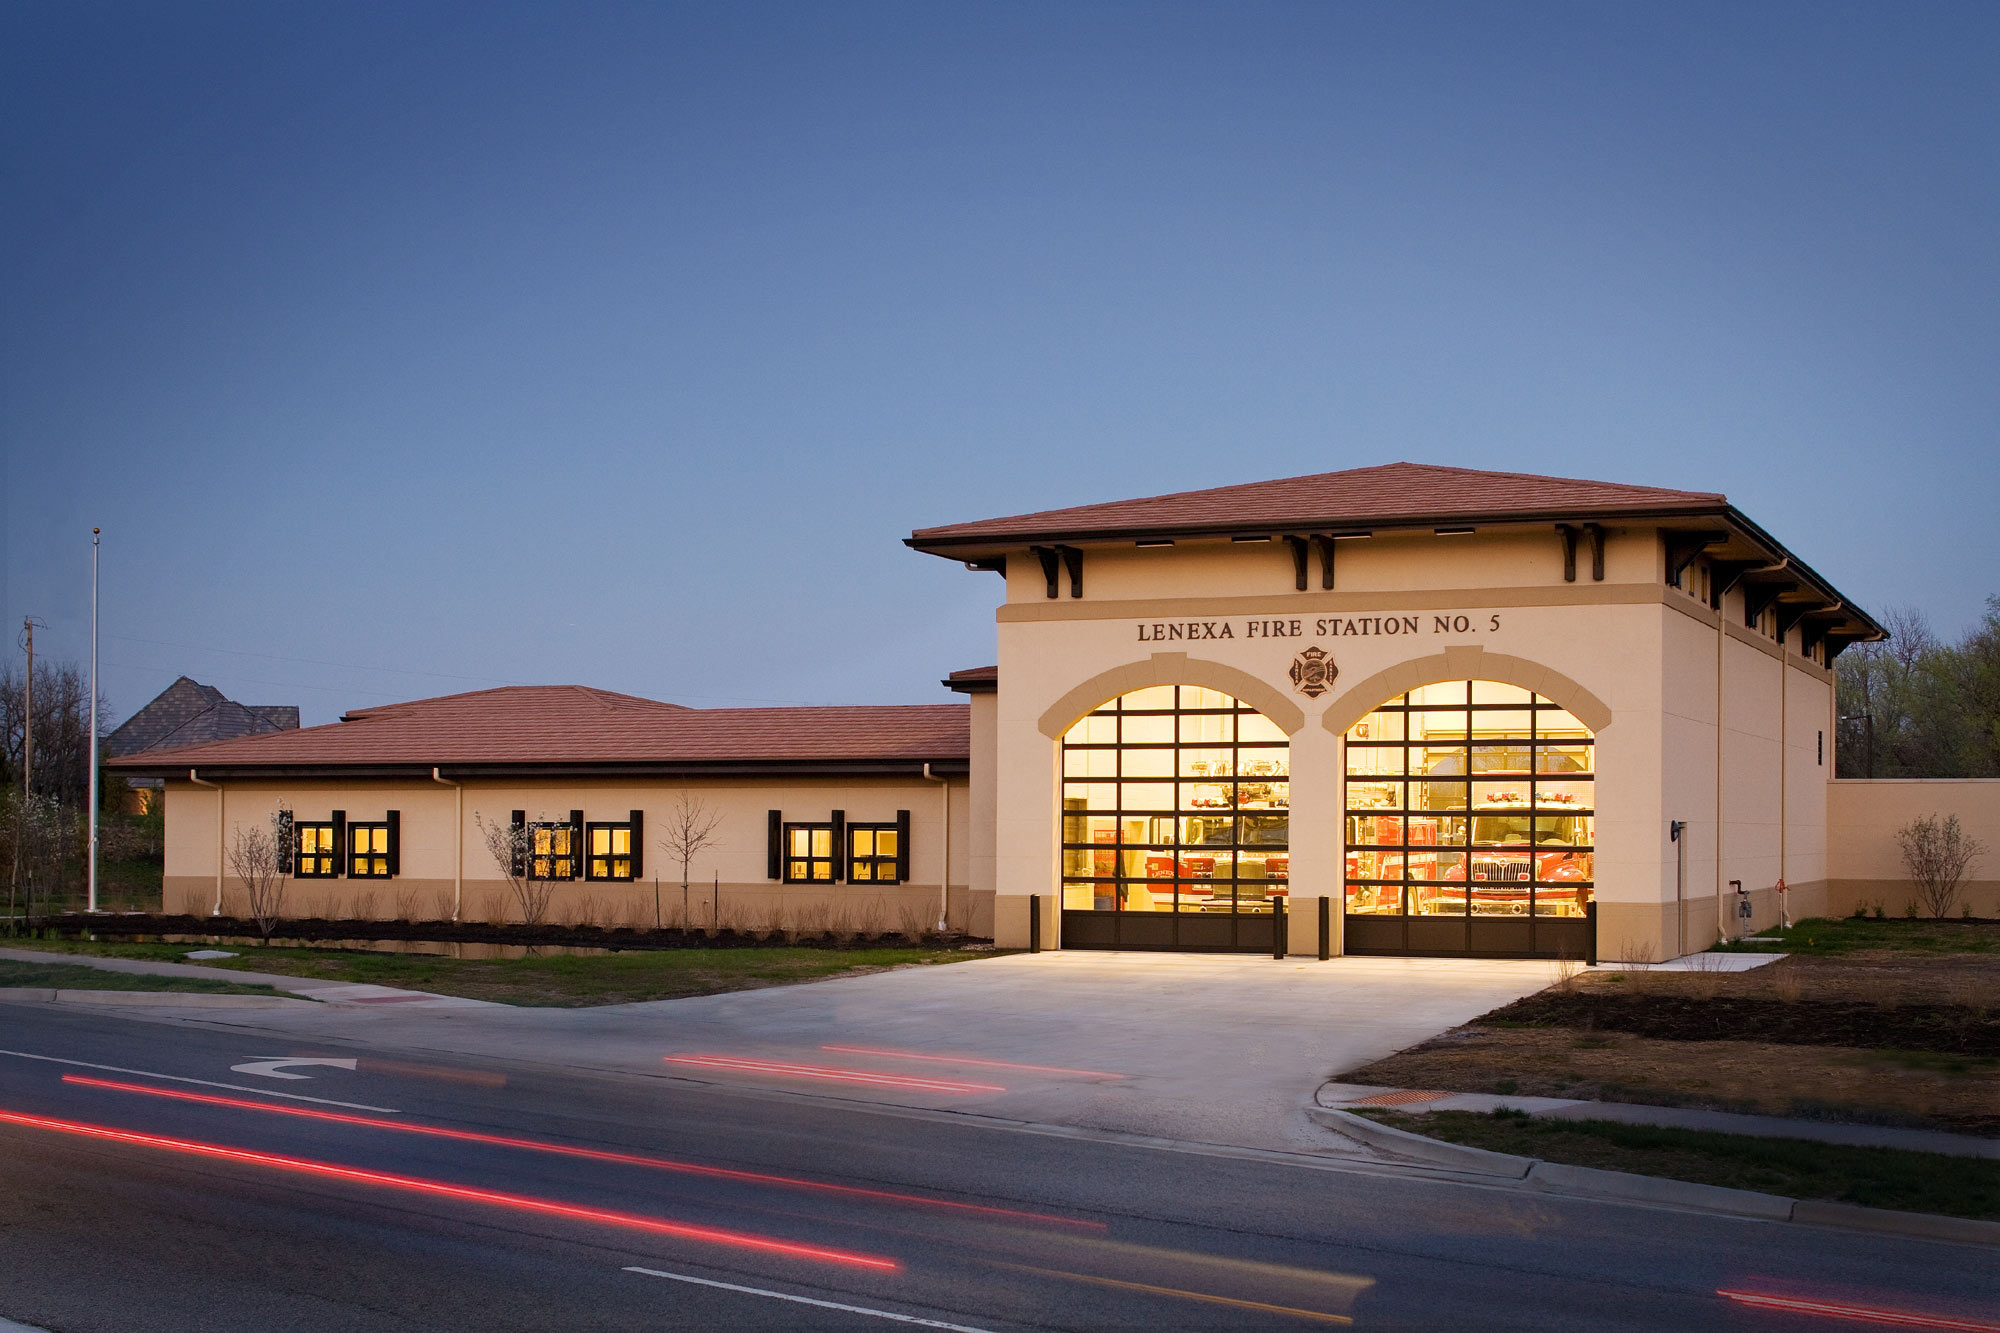 Lenexa Fire Station No.5